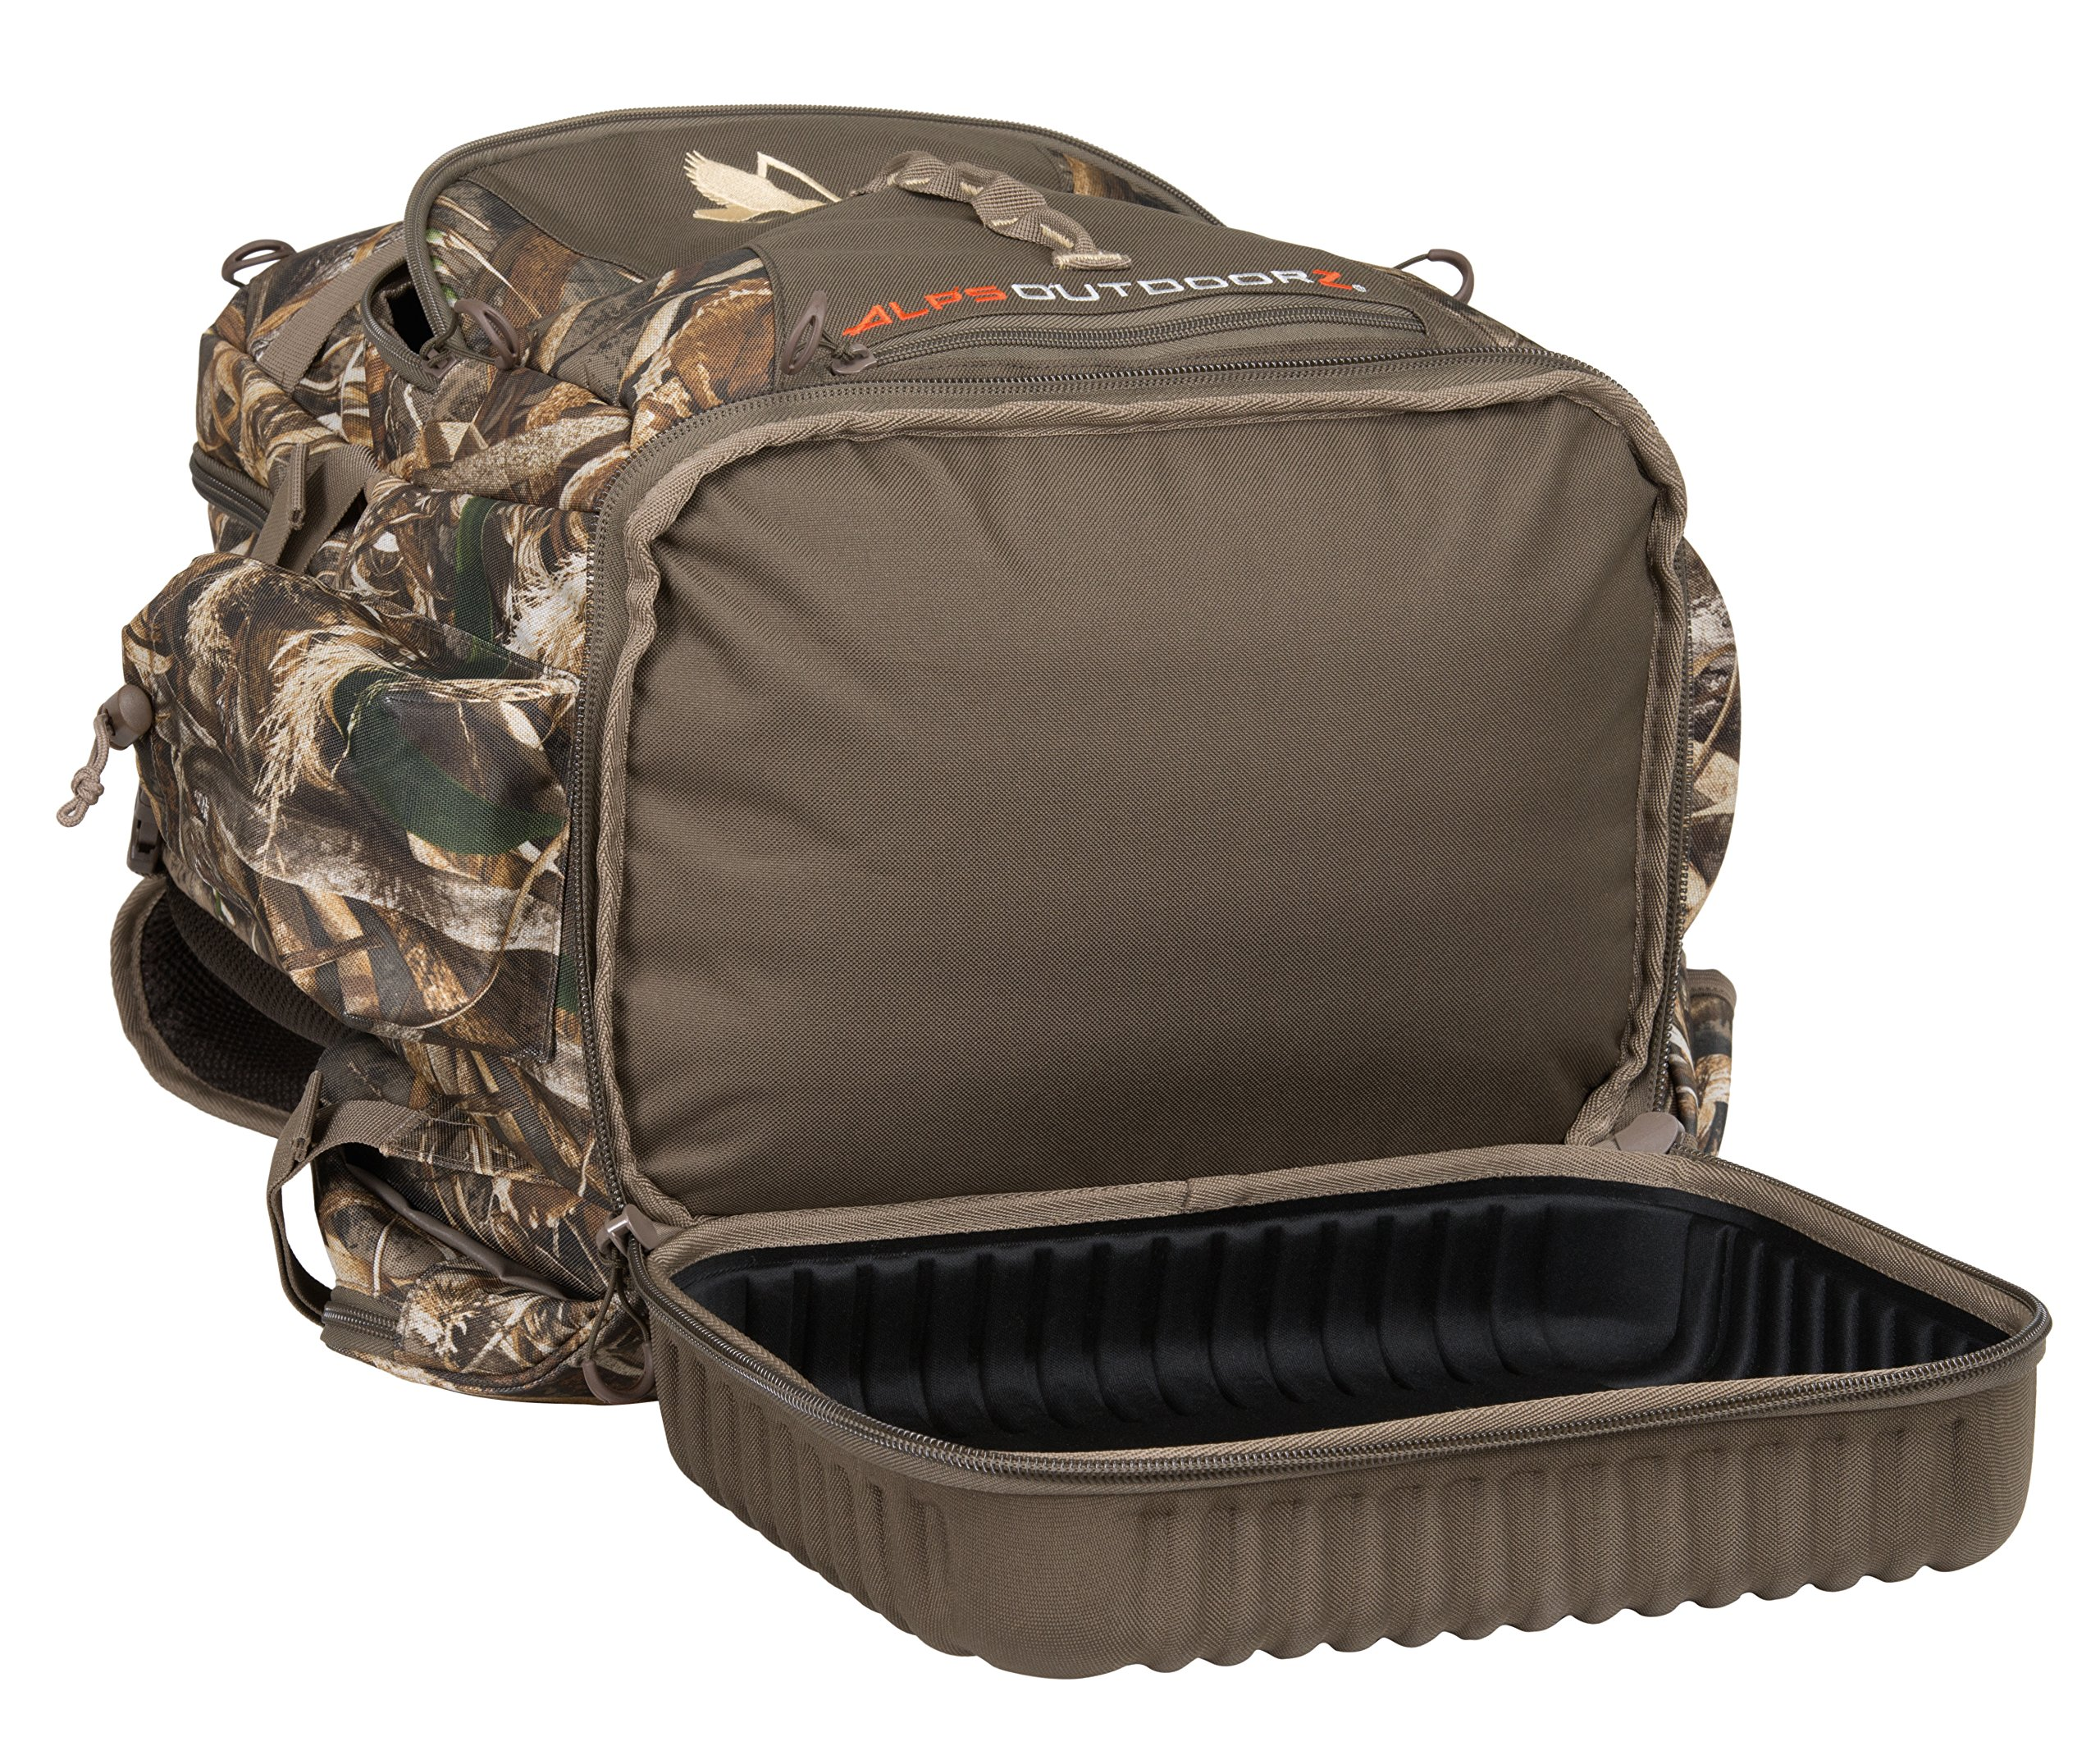 ALPS OutdoorZ Delta Waterfowl Backpack Blind Bag by Delta Waterfowl (Image #3)